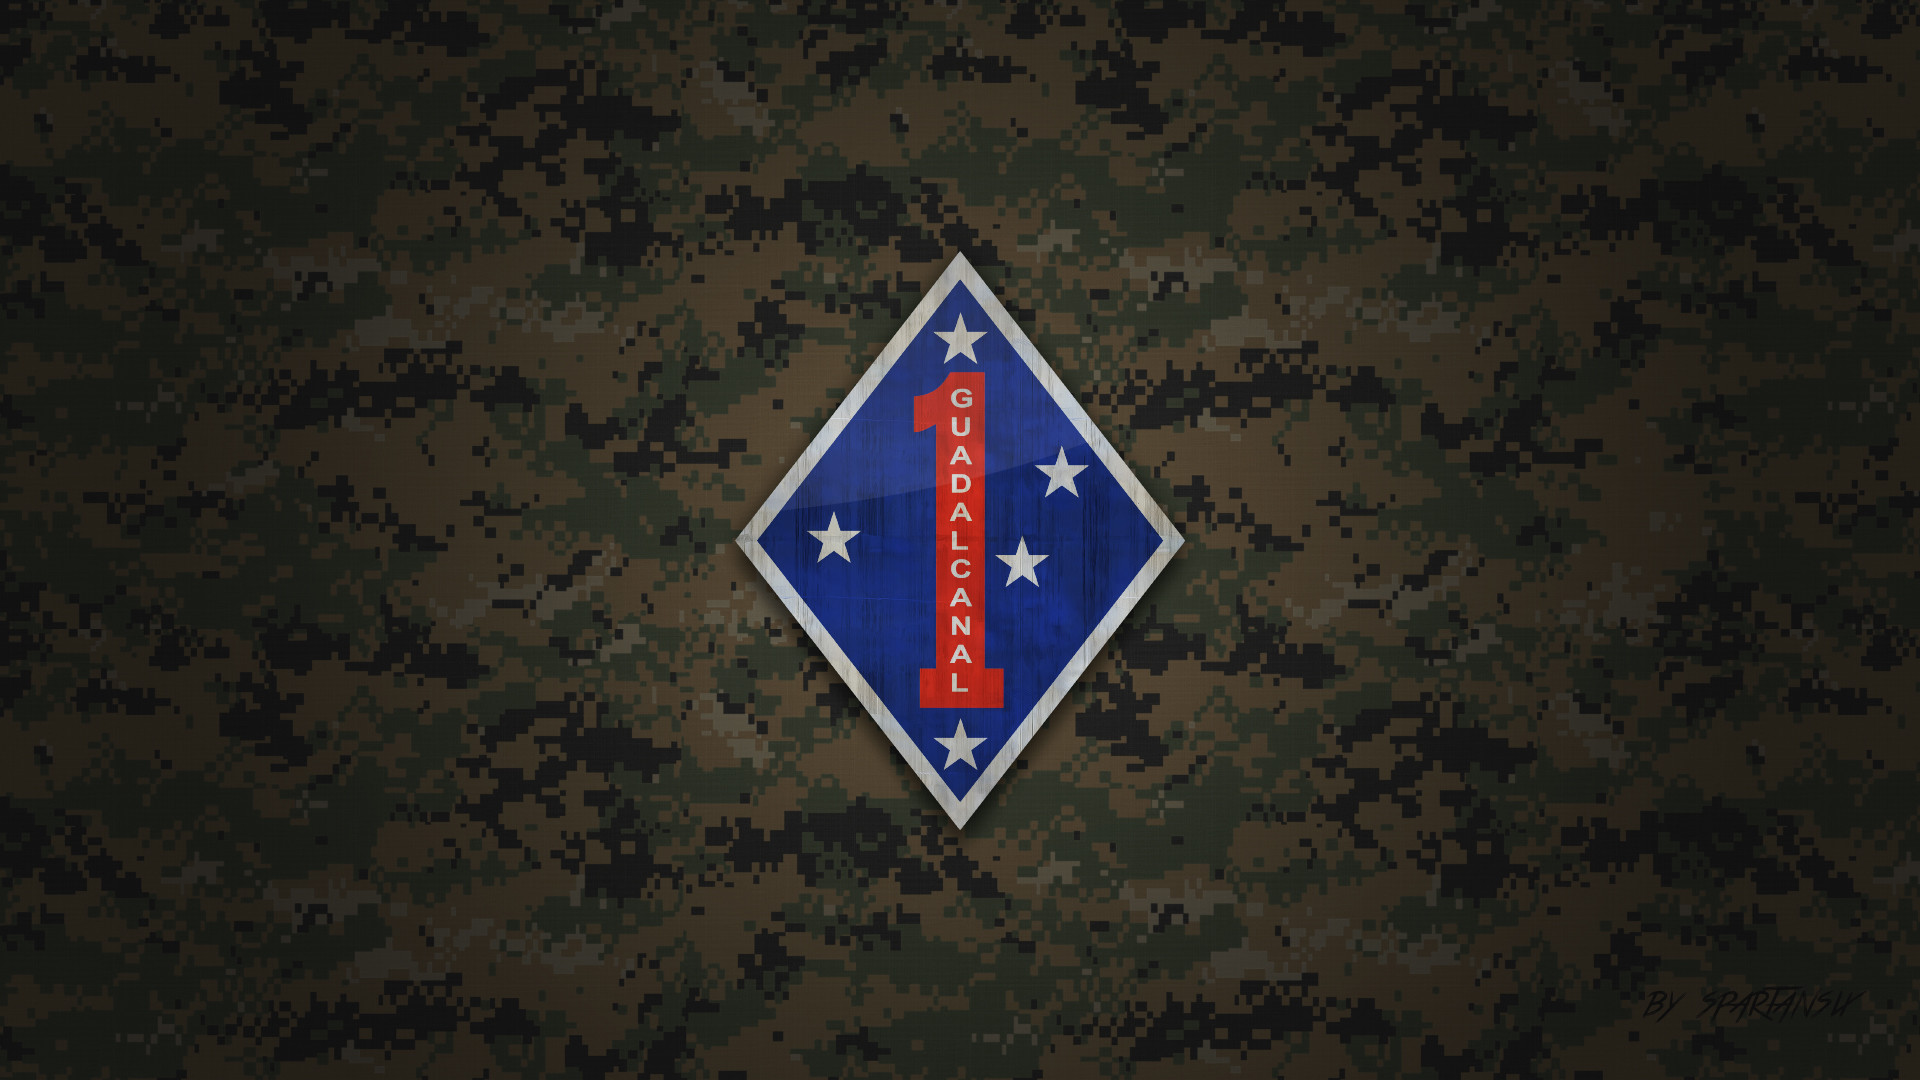 … 1st Marine Division Wallpaper by SpartanSix by SpartanSix